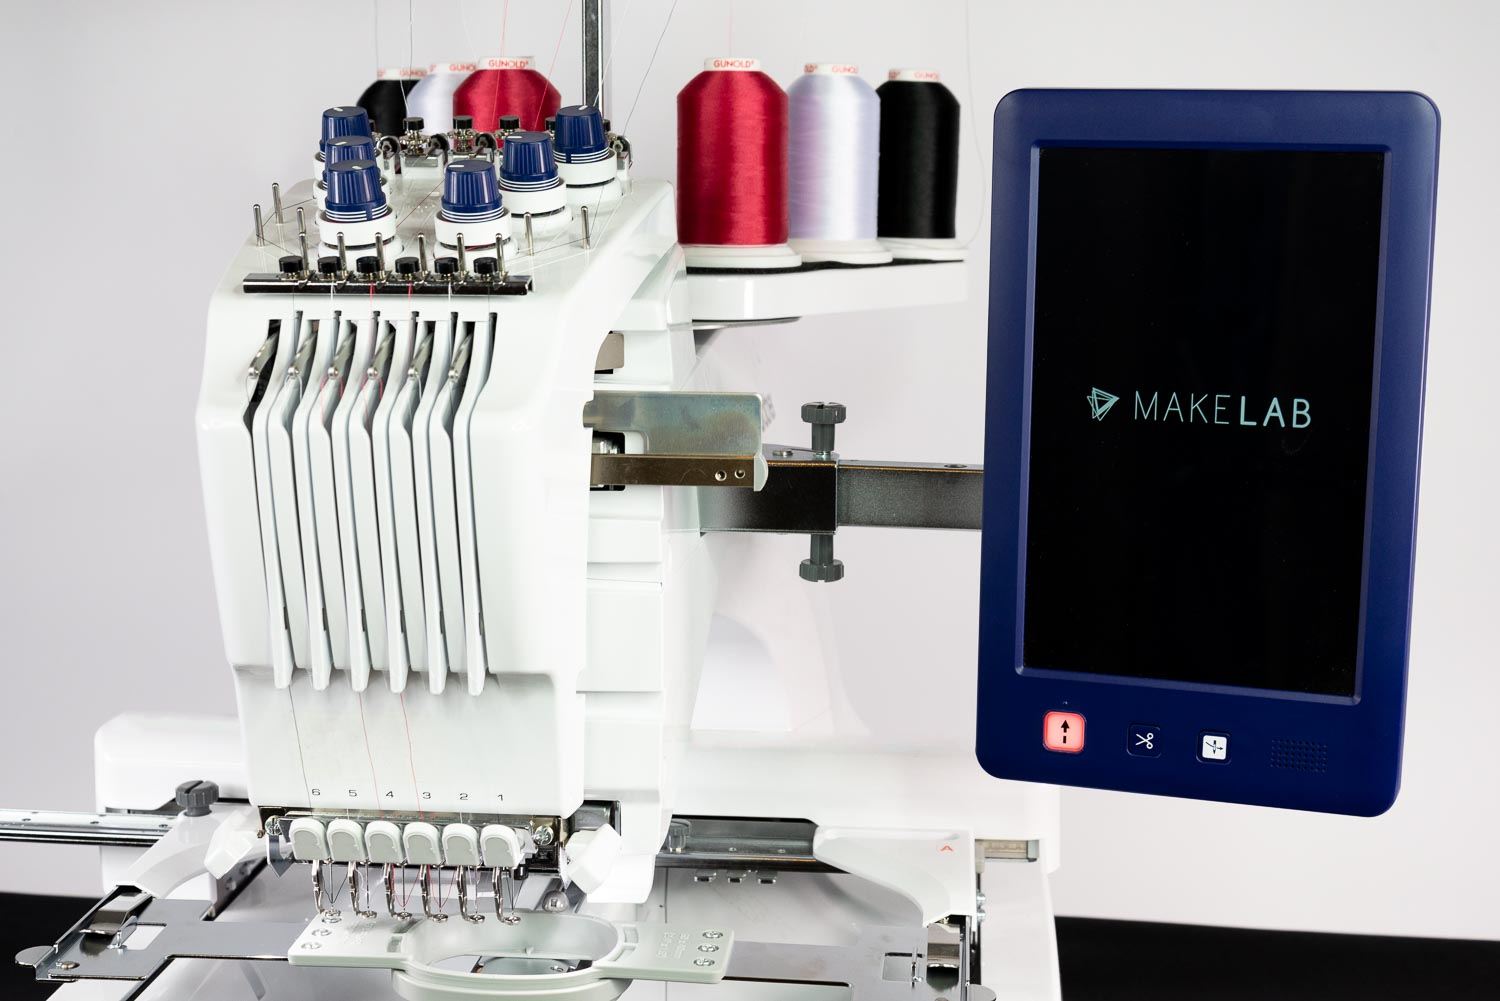 Our embroidery machine's digital screen